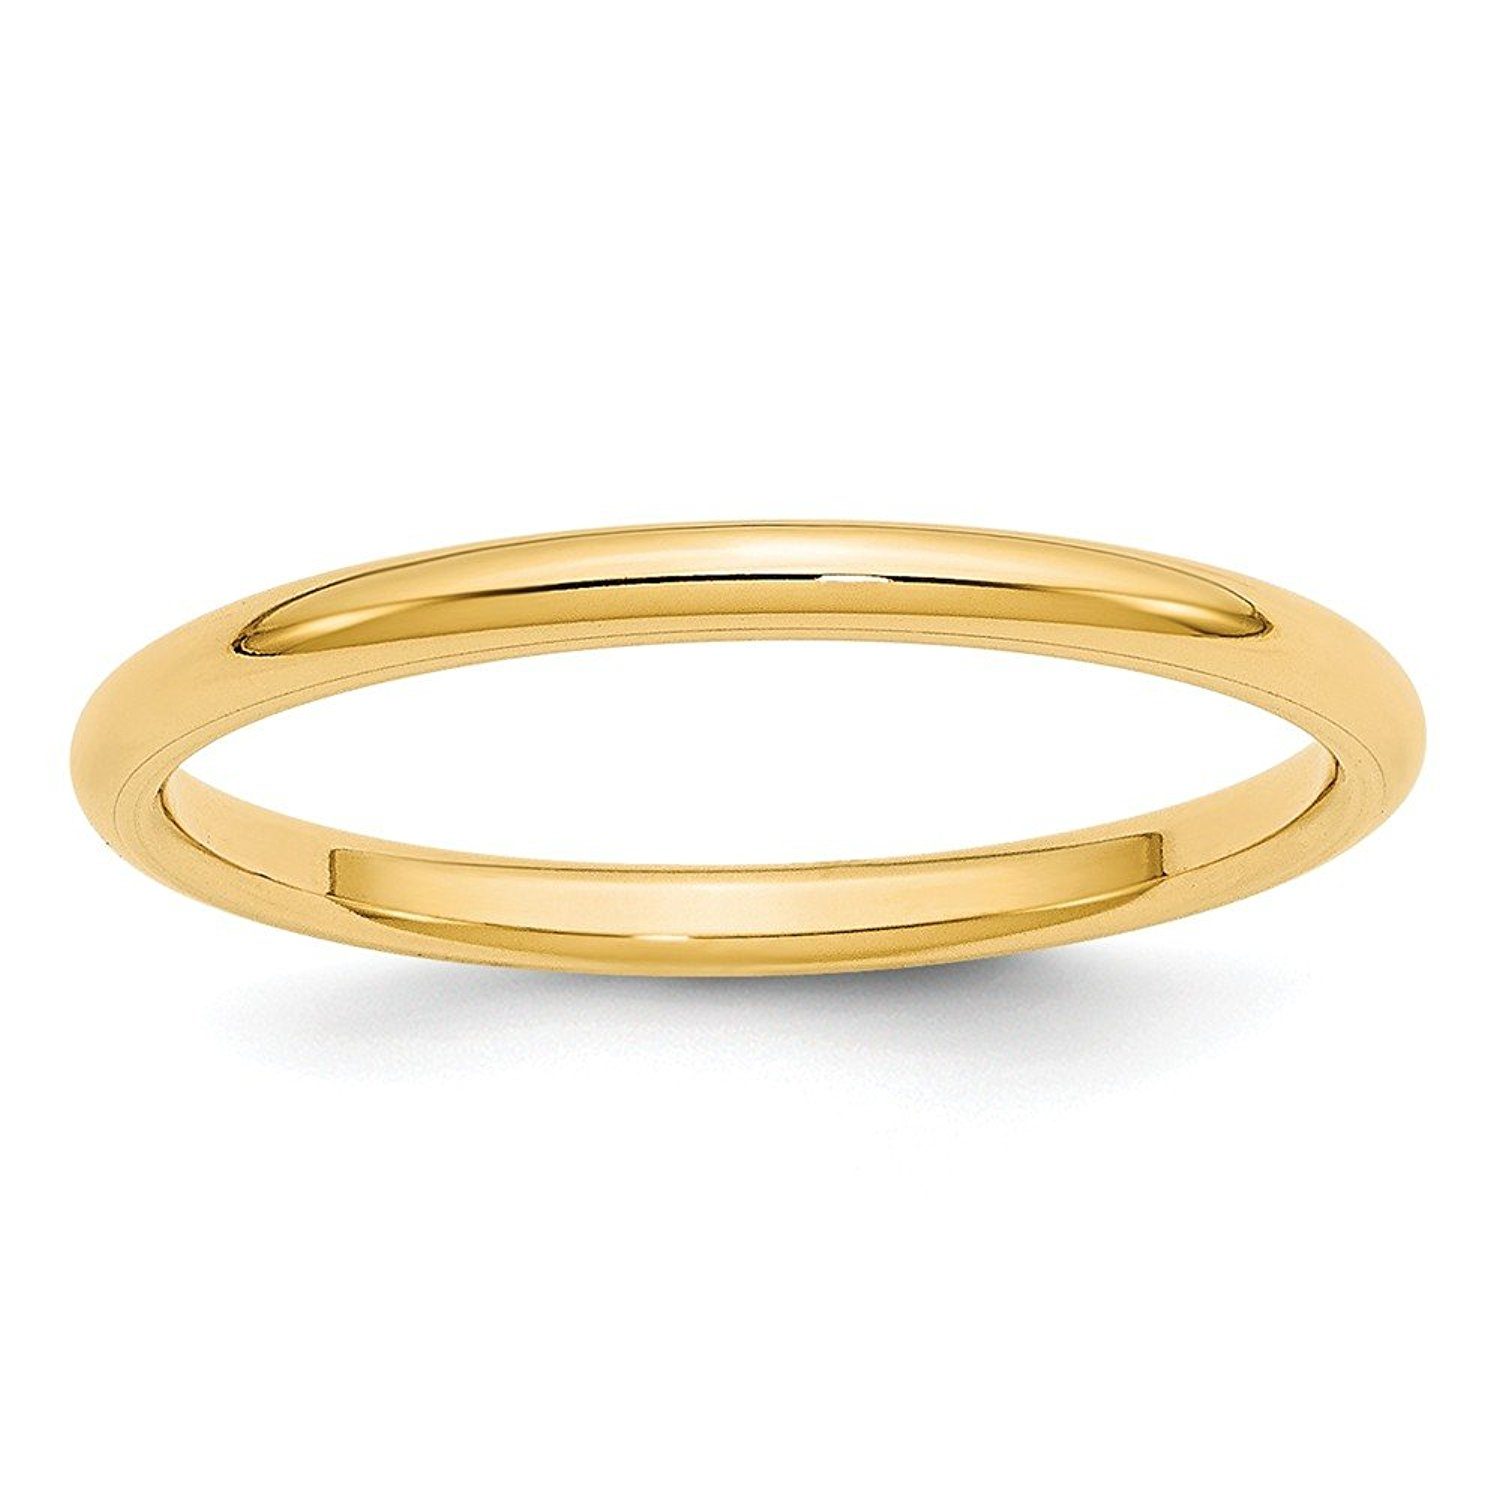 Perfect Jewelry Gift 14KY 2mm Standard Comfort Fit Band Size 10